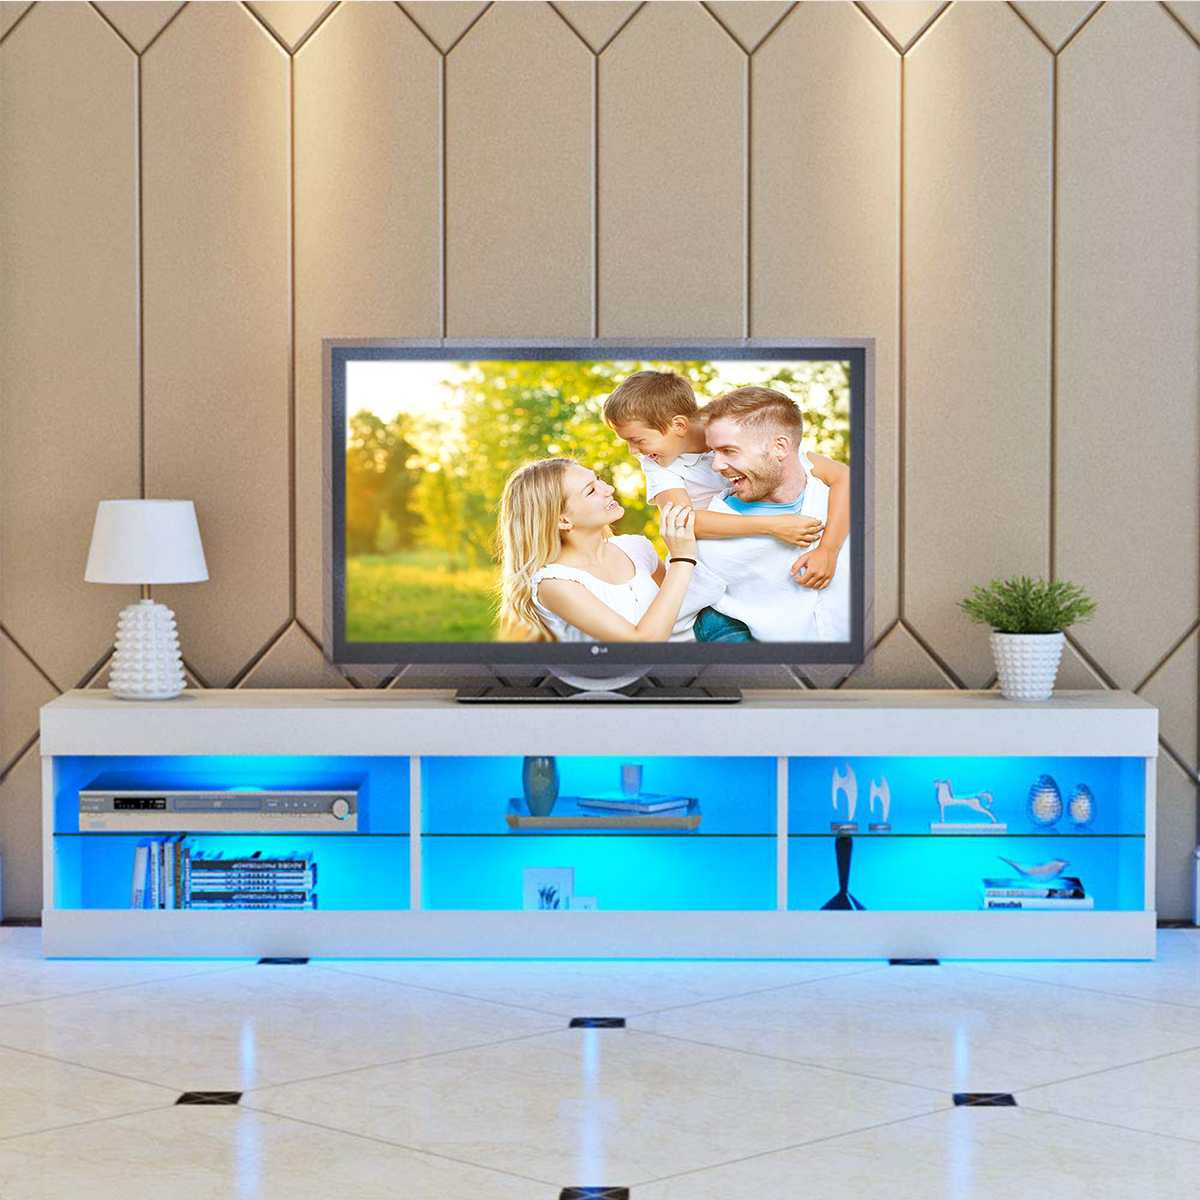 57'' Portable Detachable TV Stand Cabinet Console With LED Light Shelves For Living Room White Wood Black Table US Shipping